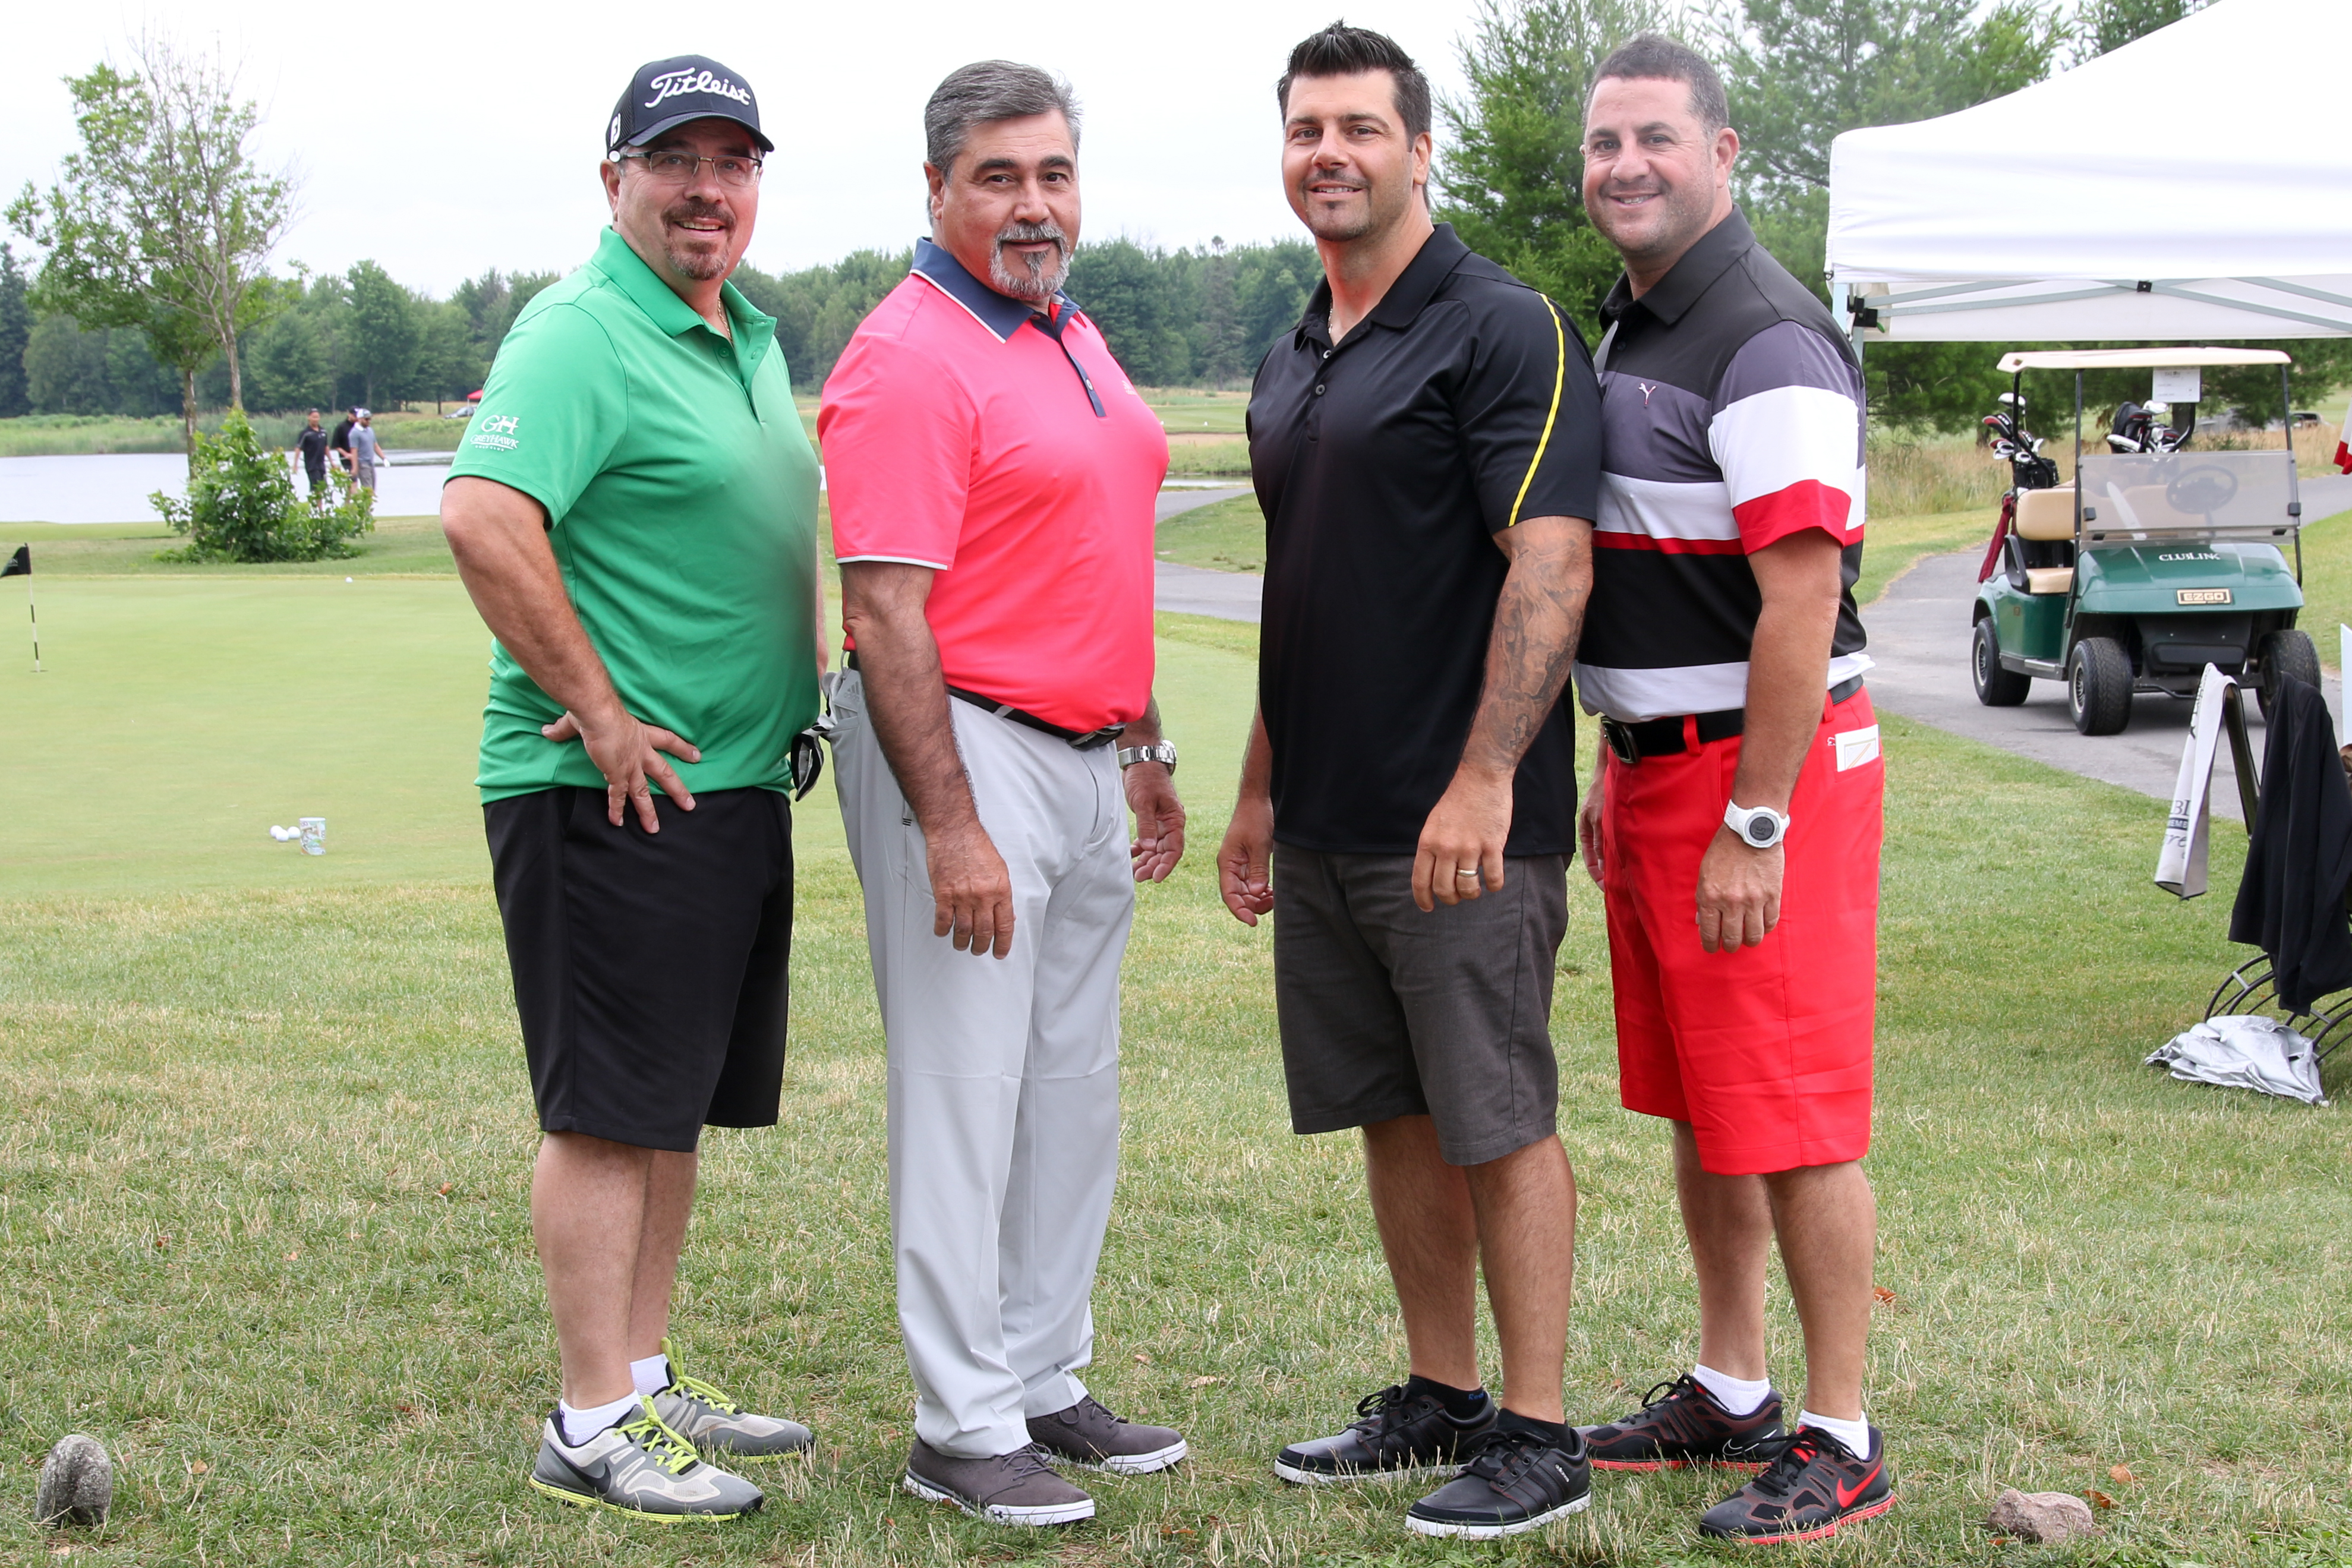 PRGolf2016 - Barwood Flooring Team